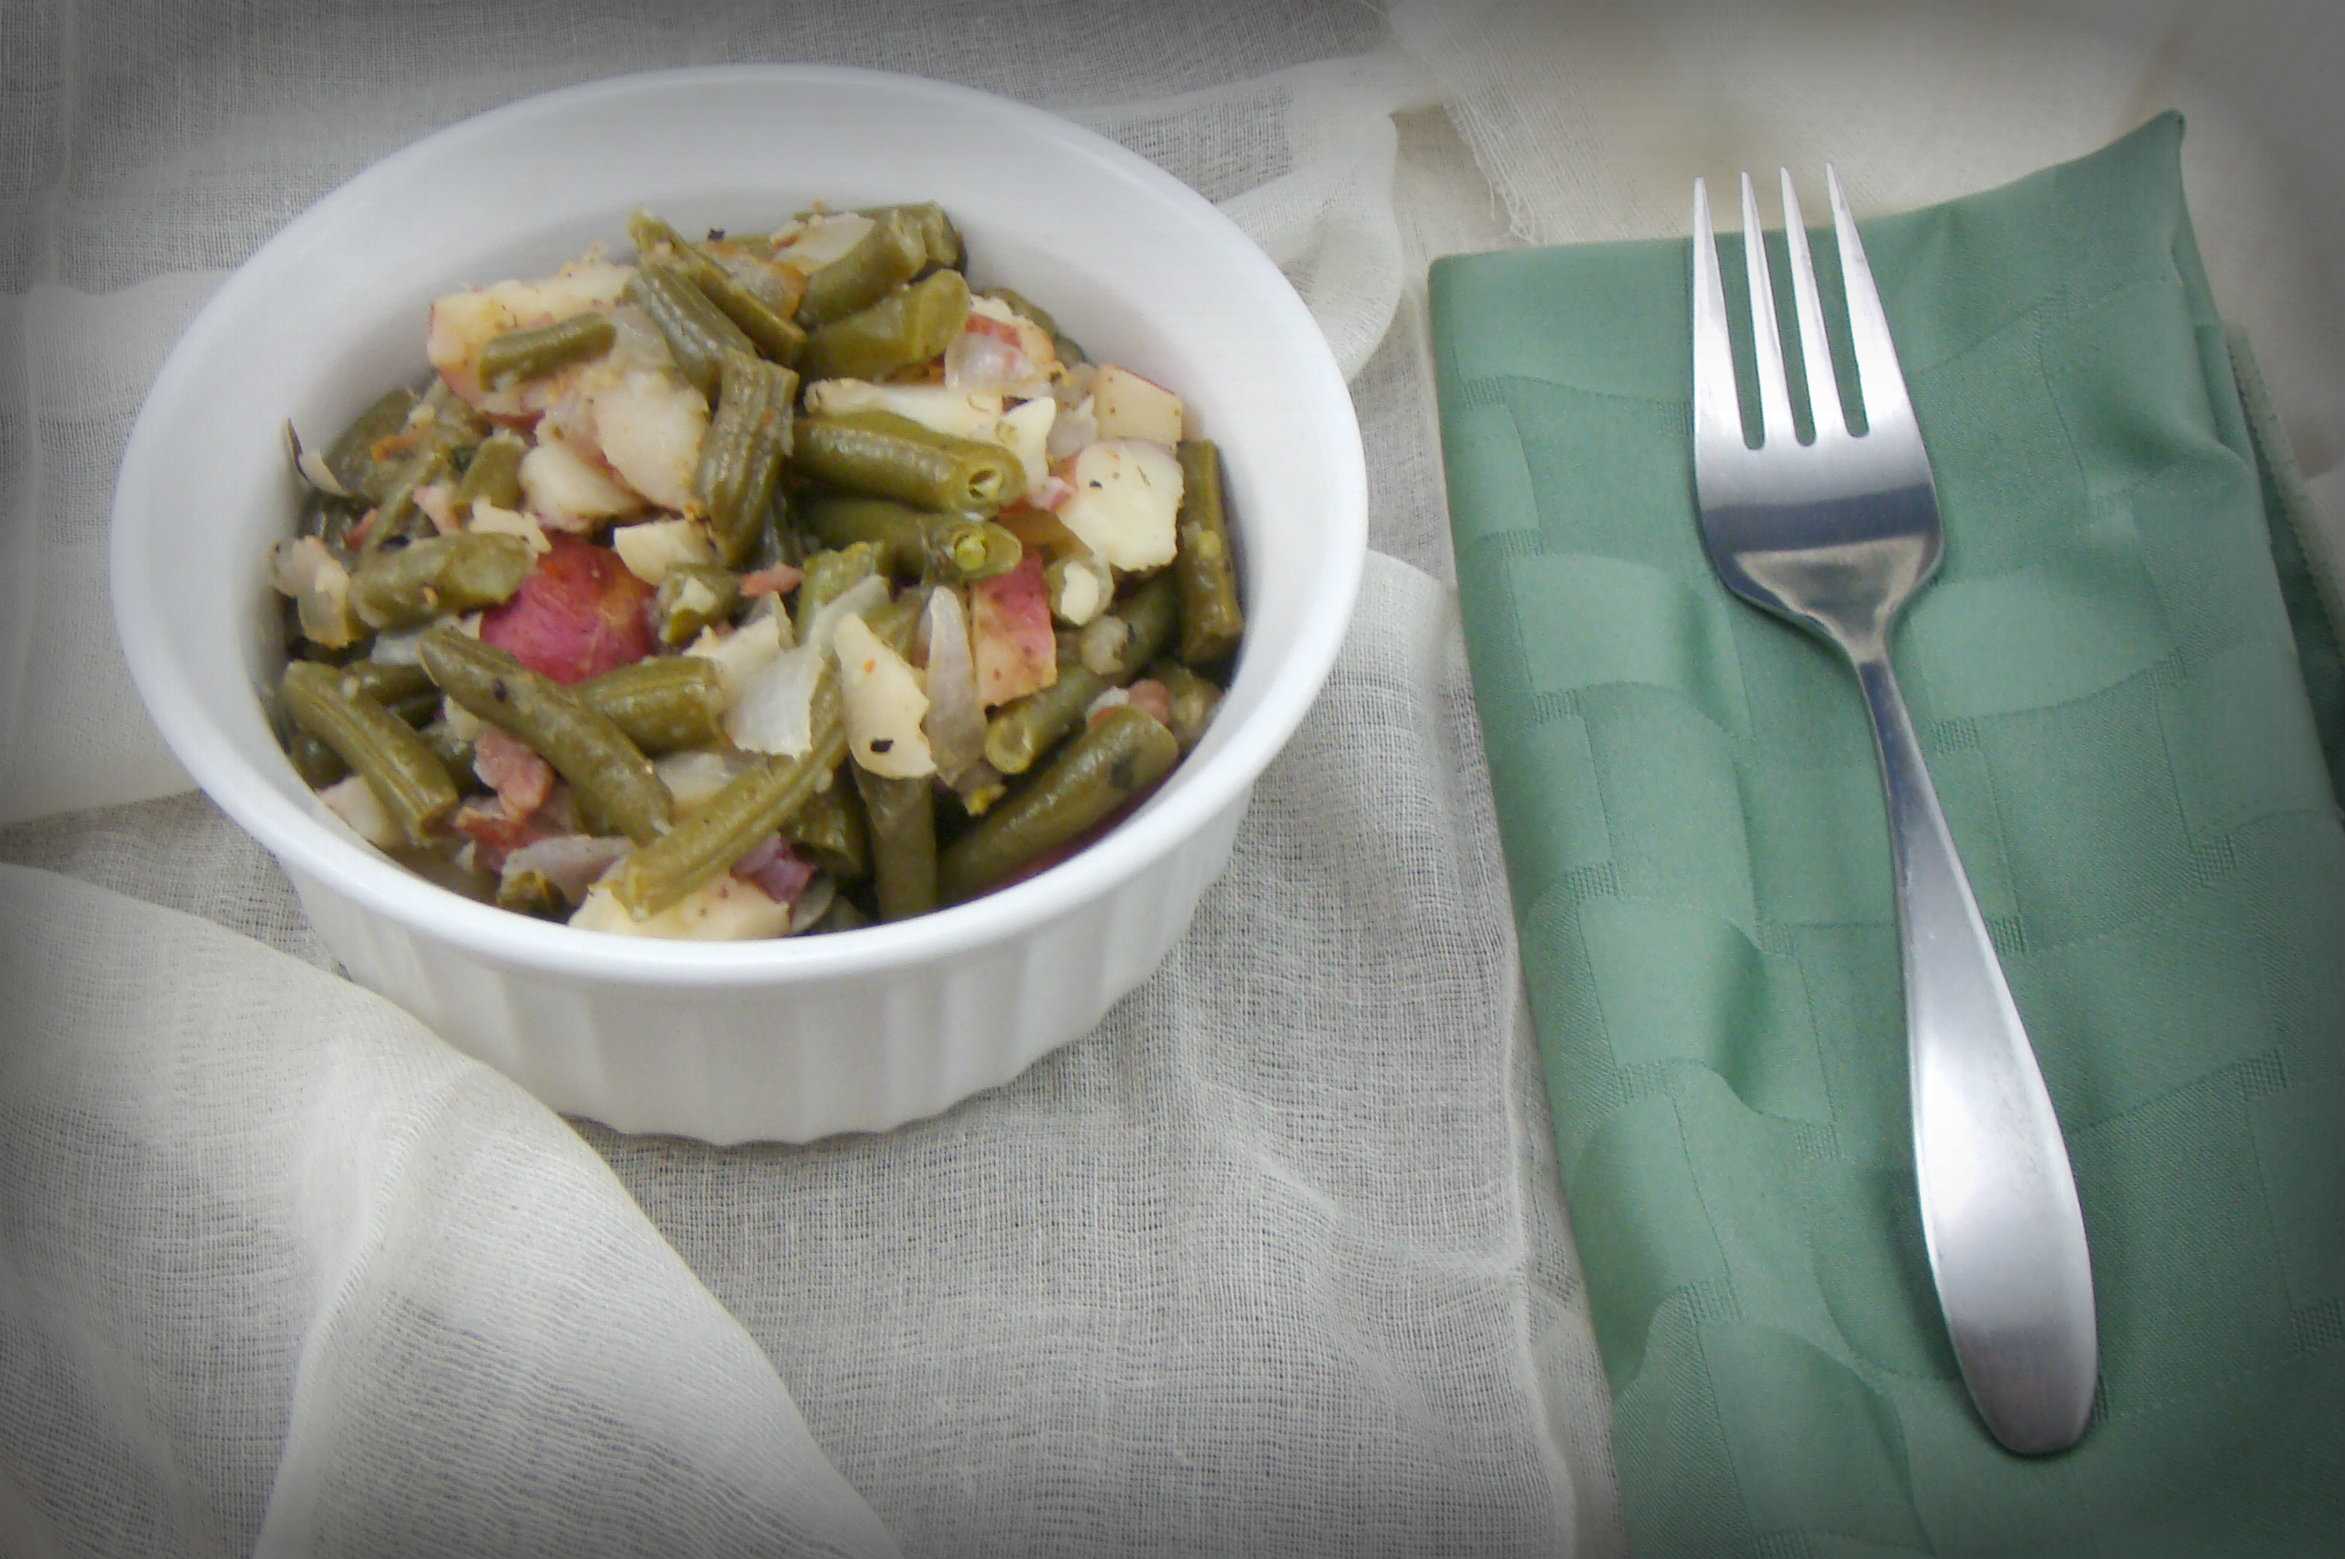 Warm Green Bean and Potato Salad (with vegan option)